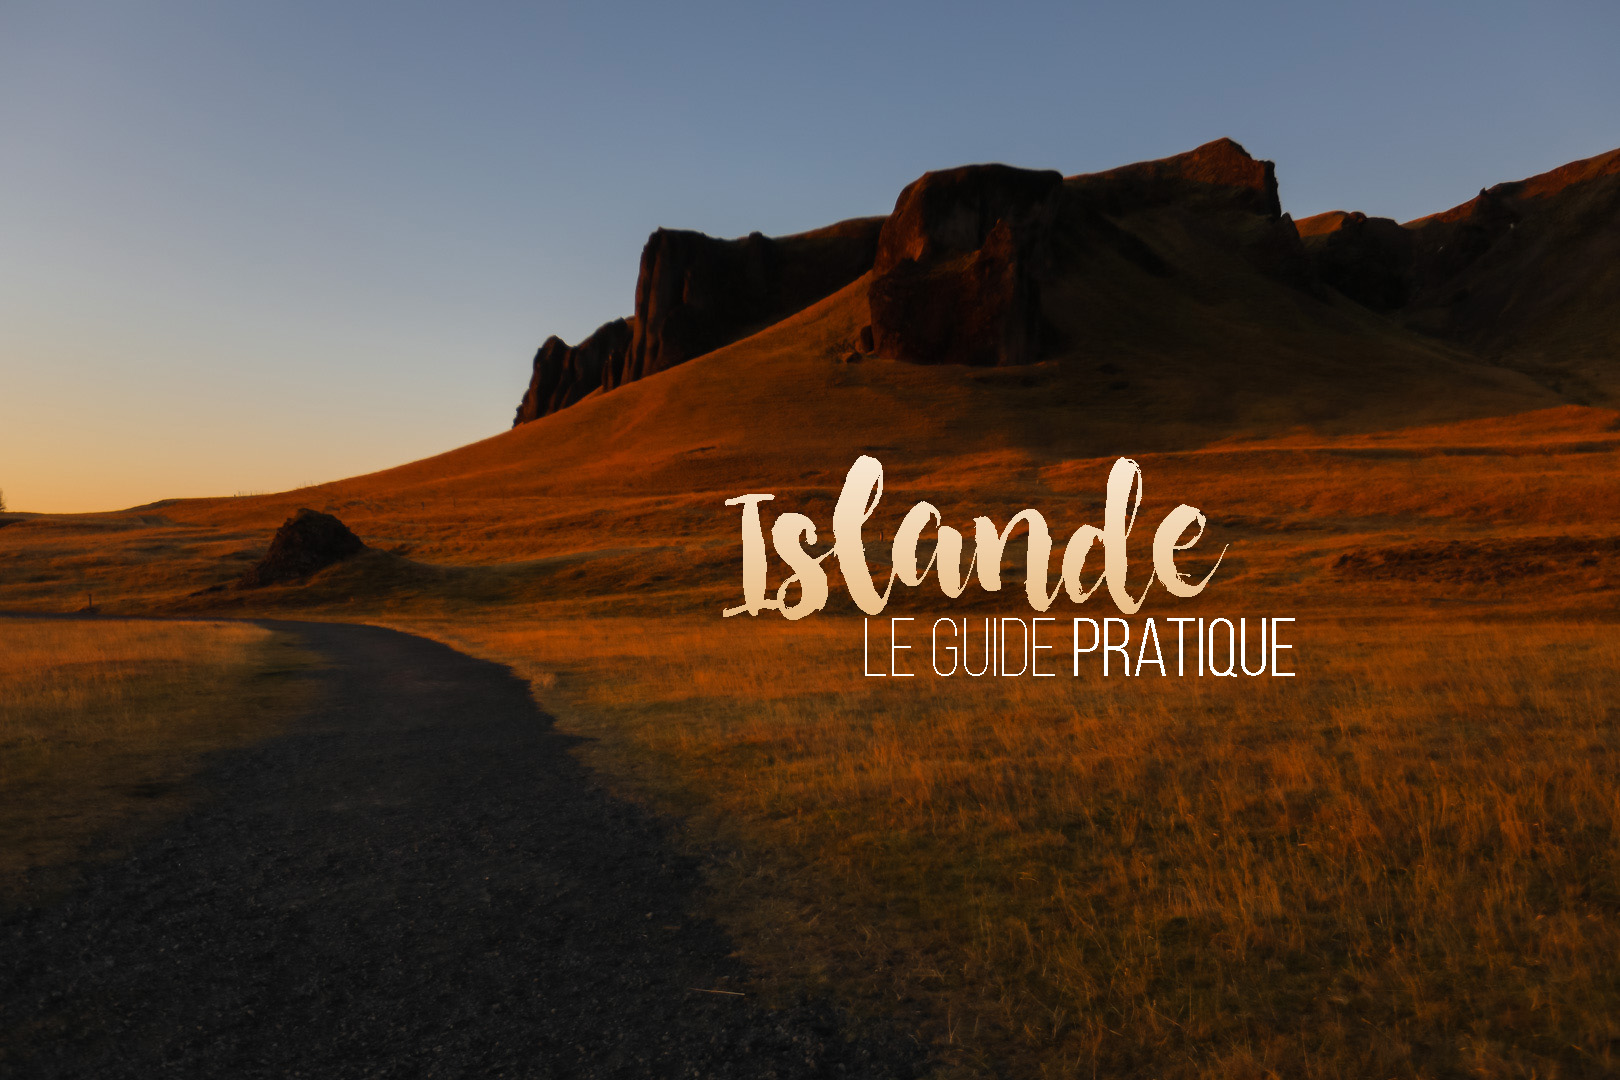 Islande guide pratique